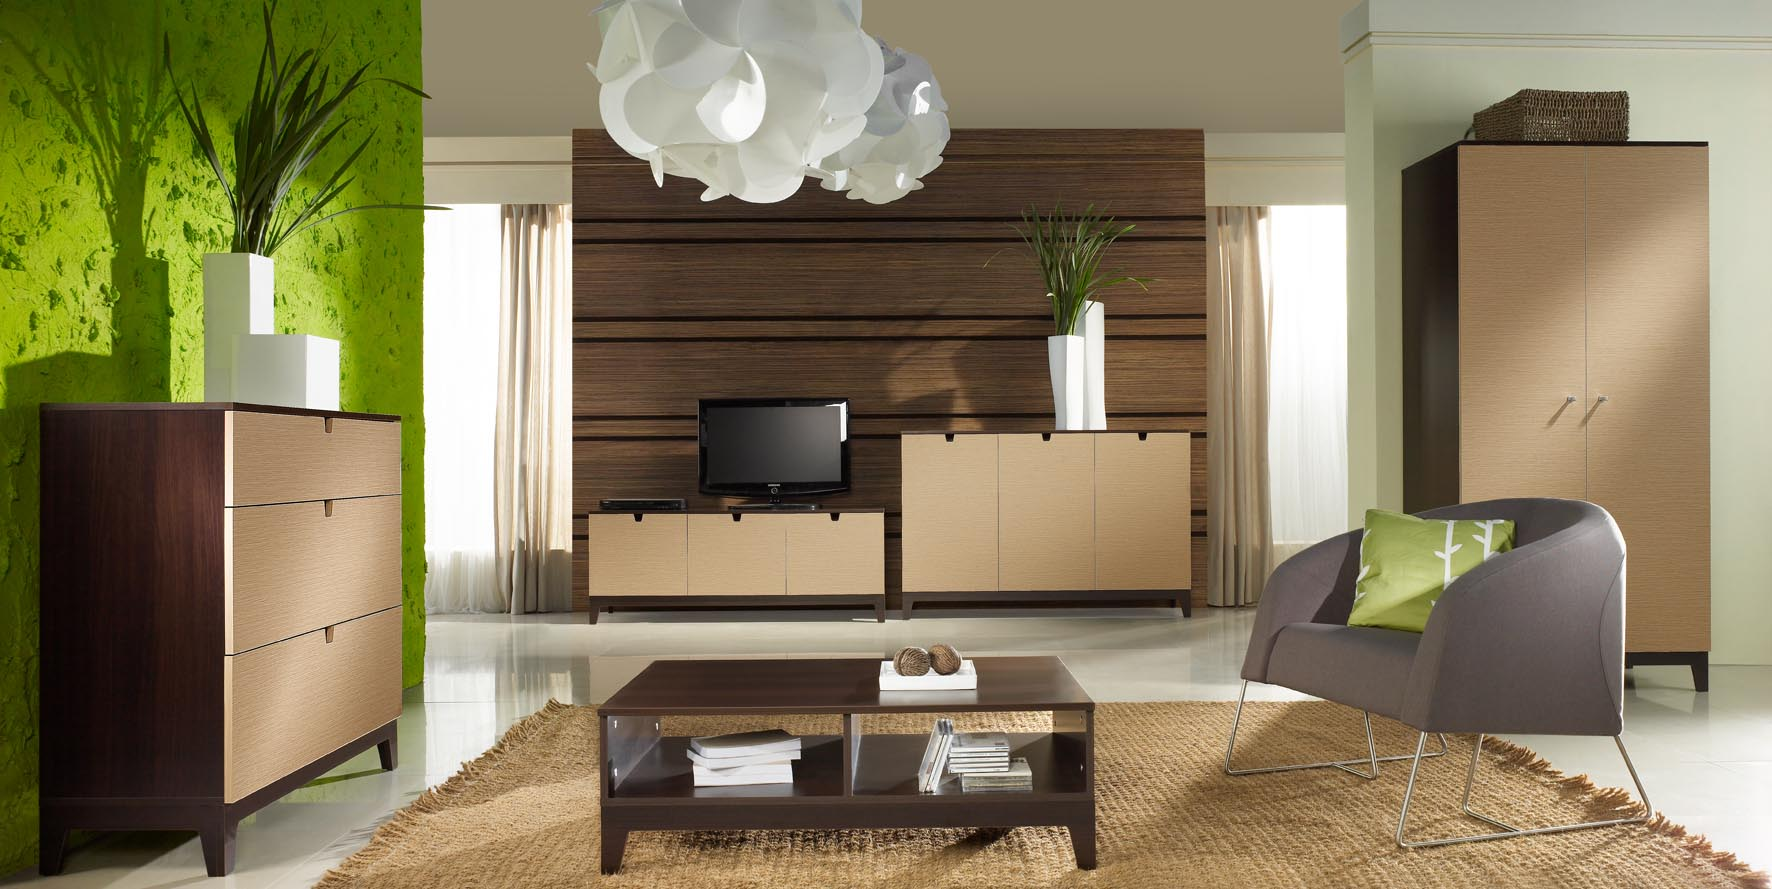 Featured Image of Contemporary Living Room Bookcases And Cabinet Furniture